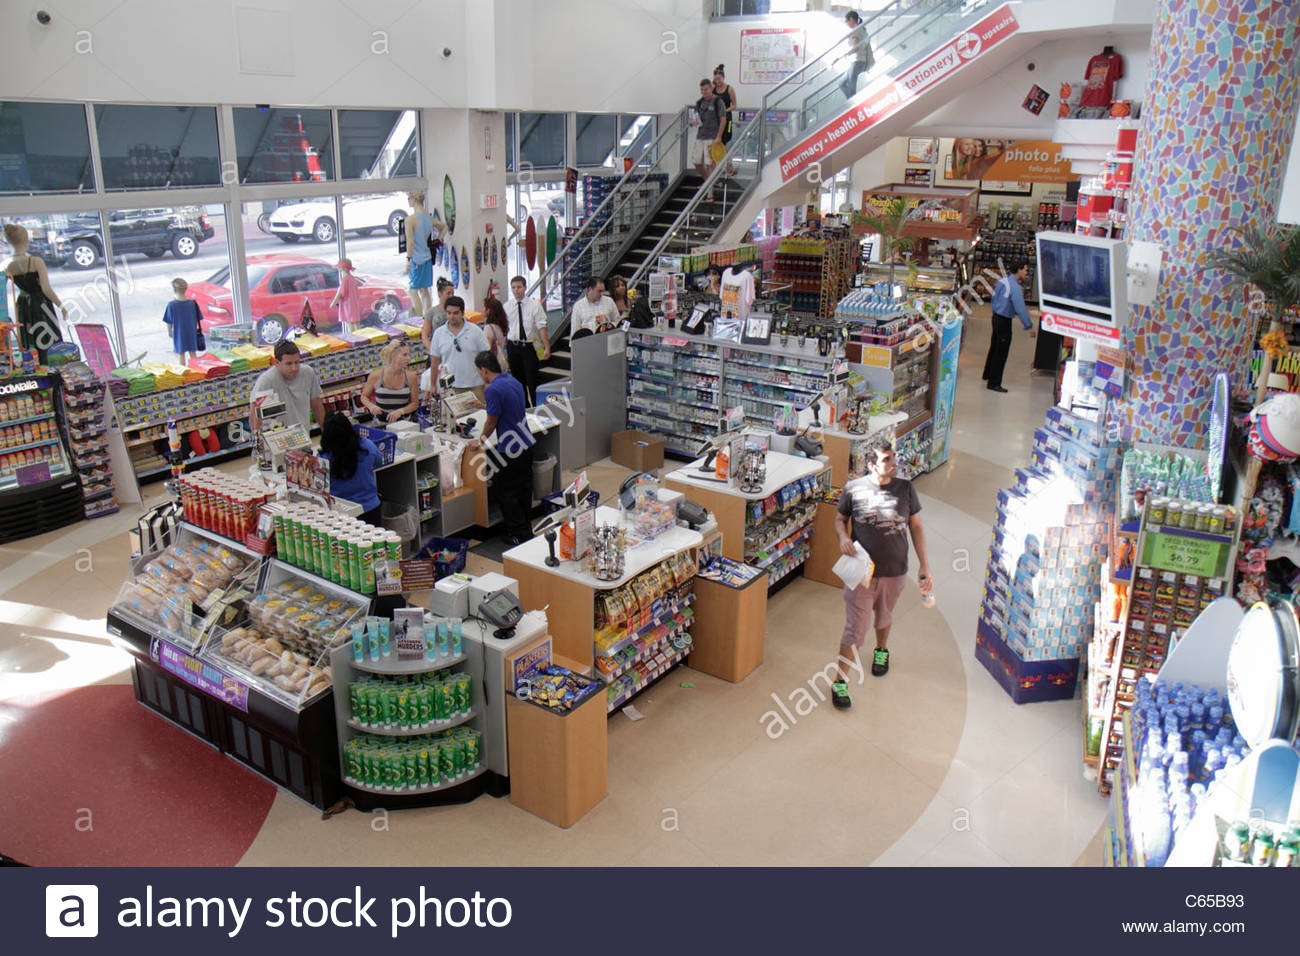 walgreens business plan walgreens counter stock photos amp walgreens counter stock images miami beach florida walgreen s business drugstore chain pharmacy checkout counter consumer